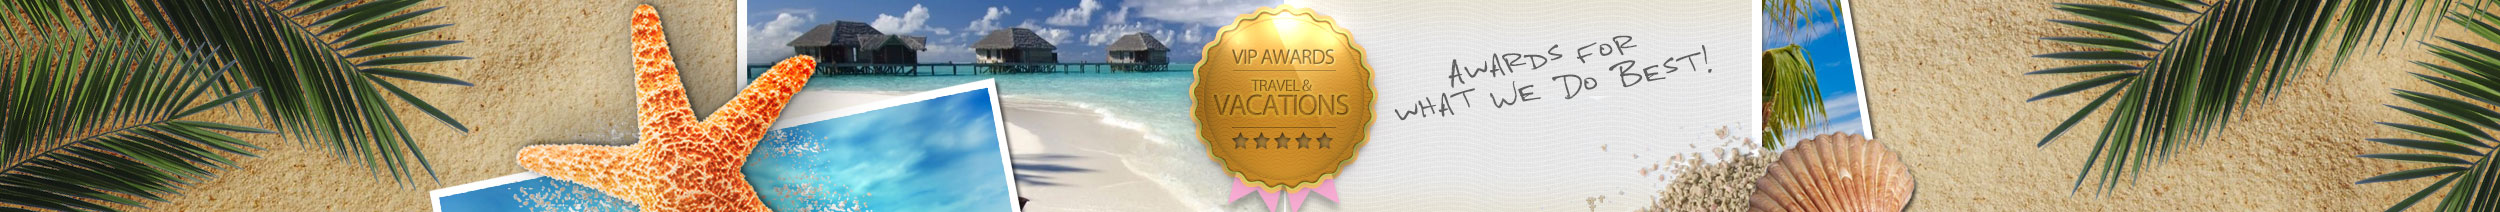 6th Annual Karisma Resorts GIVC Awards